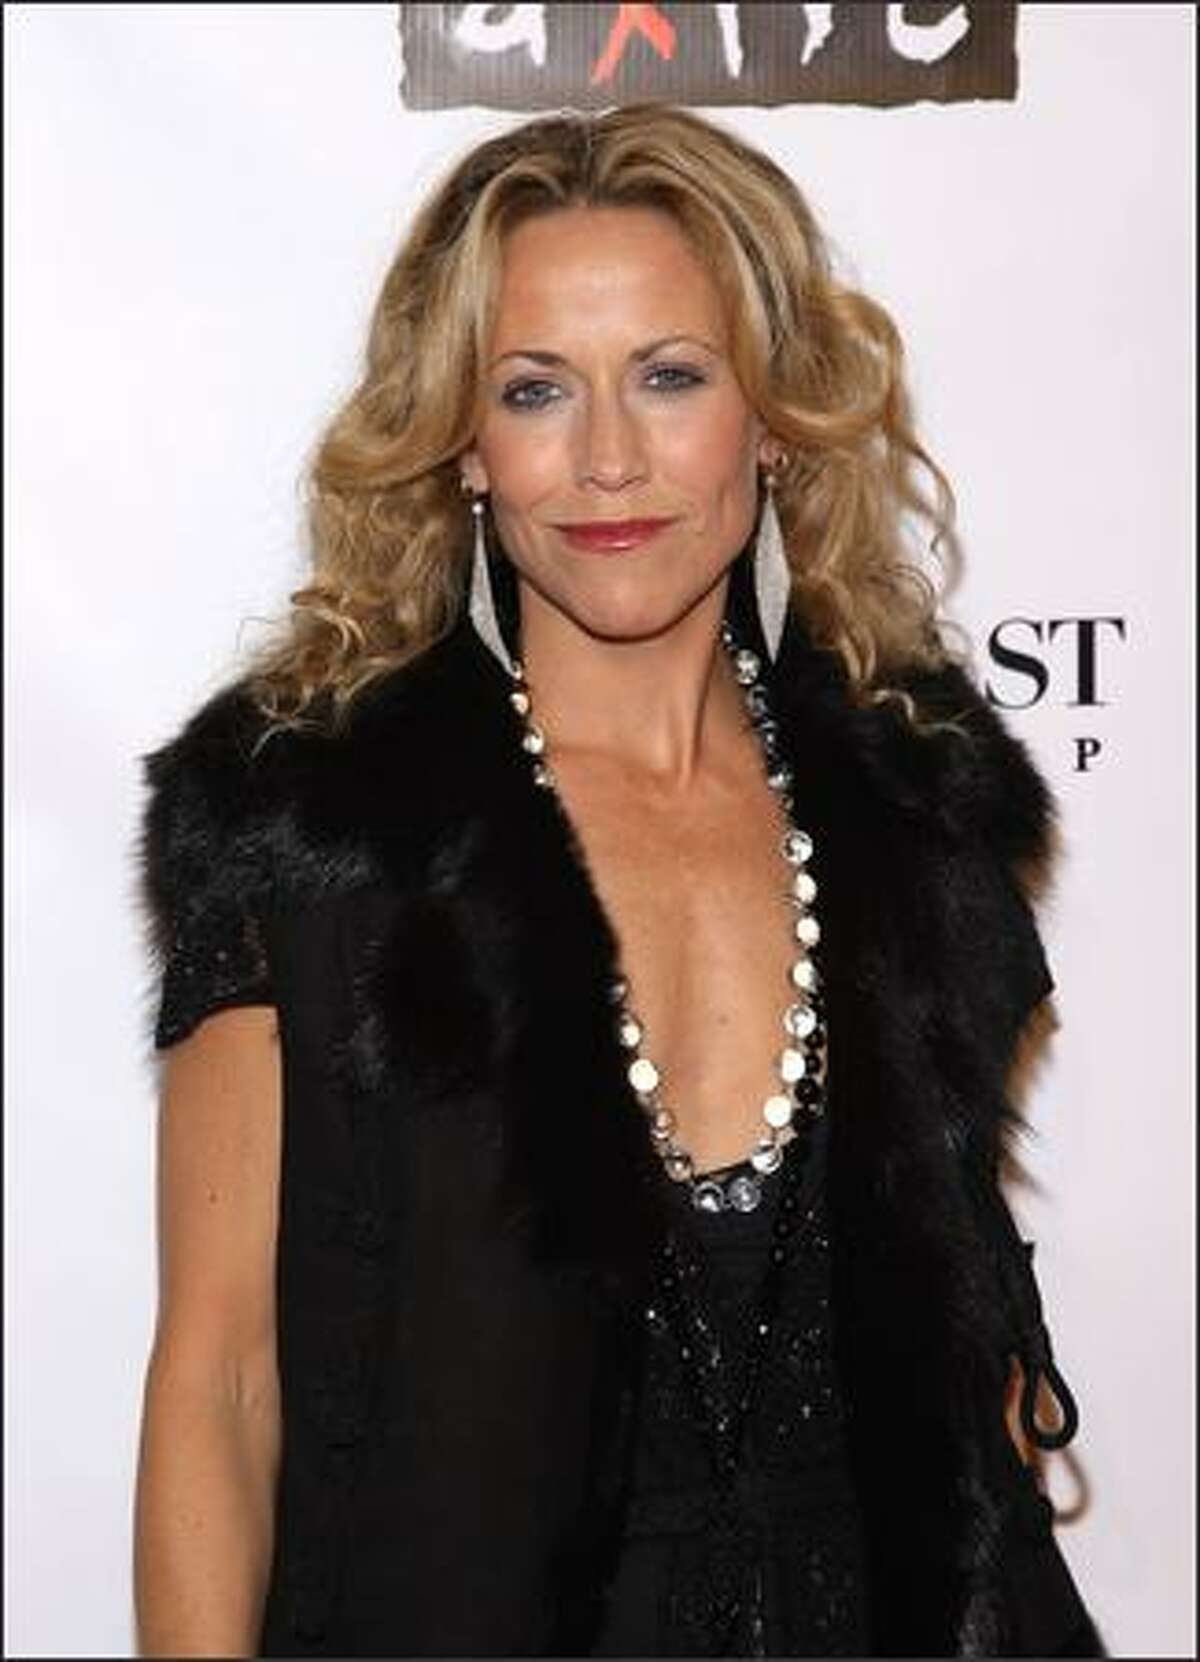 Musician Sheryl Crow arrives at the 4th Annual Black Ball concert for Keep a Child Alive (KCA) presented by the Conde Nast Media Group at Hammerstein Ballroom in New York City.